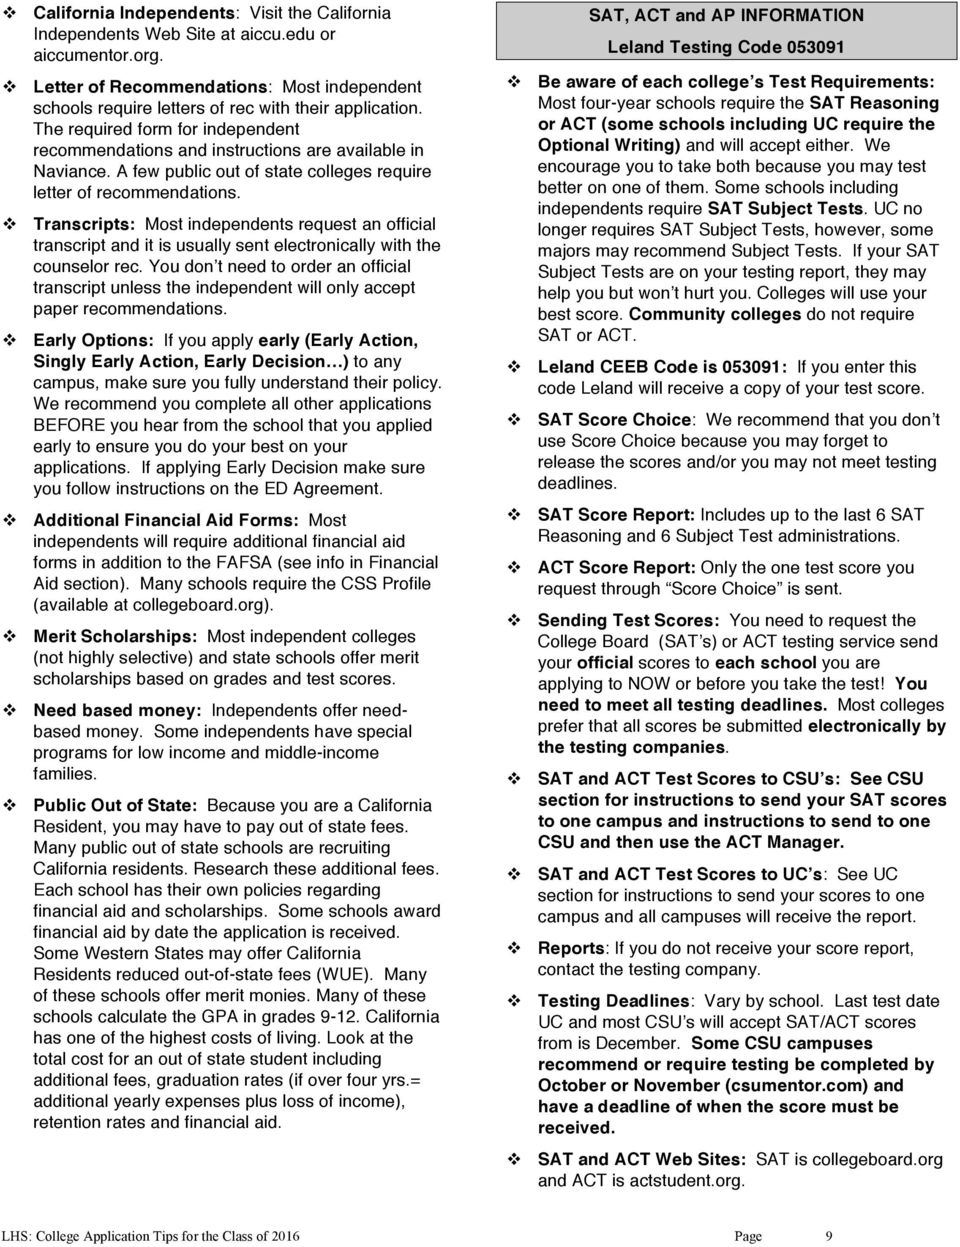 LELAND HIGH SCHOOL COLLEGE APPLICATION TIPS FOR THE CLASS OF PDF